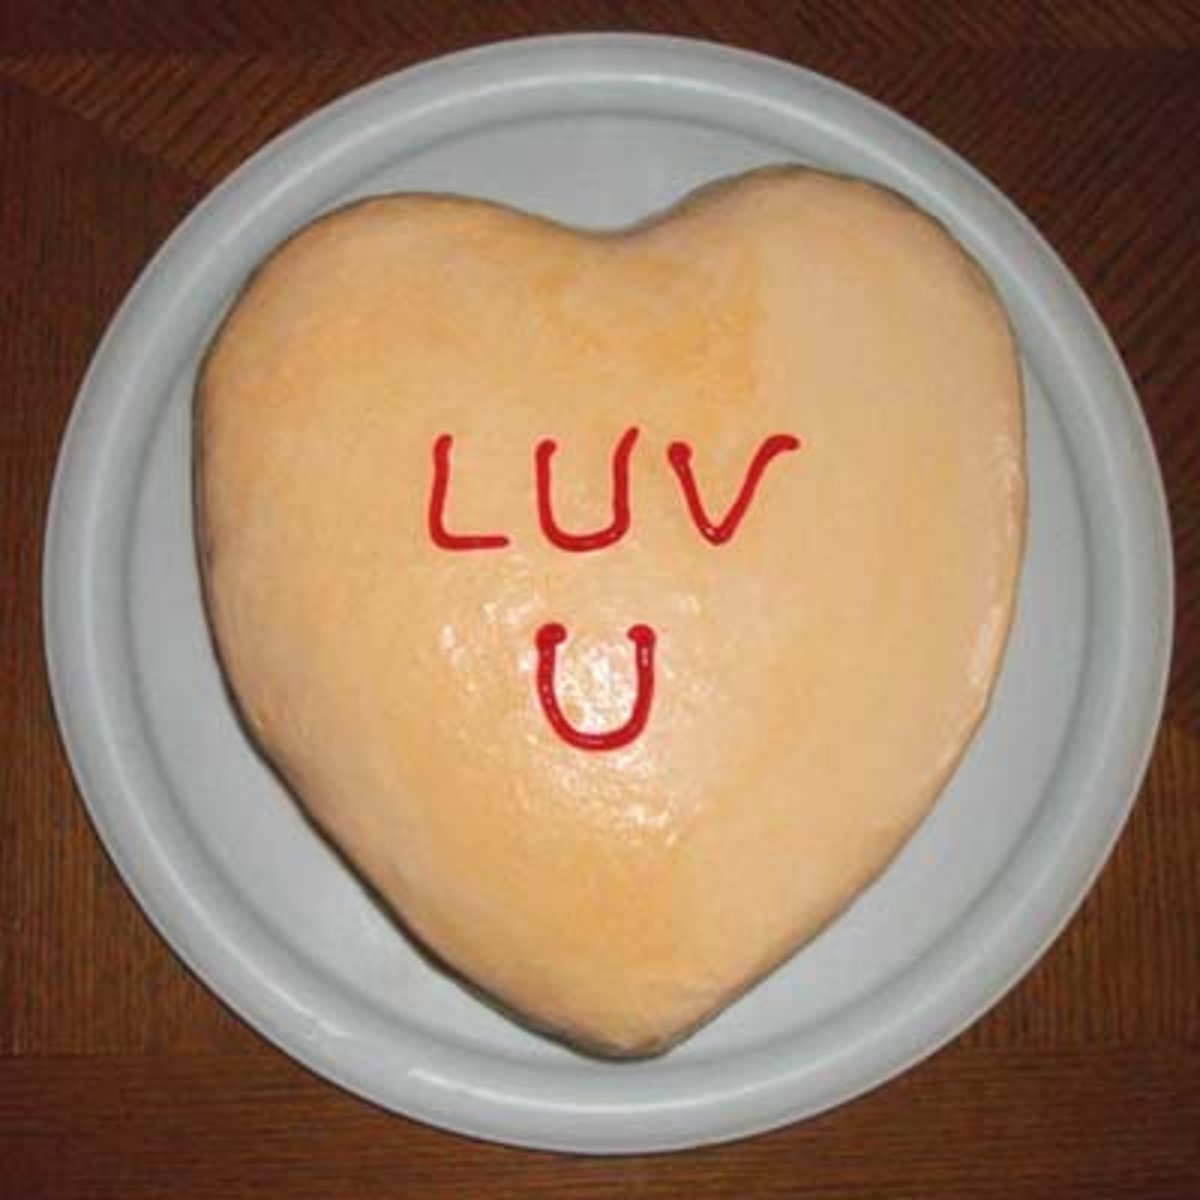 Heart-Shaped Ice Cream Cake Recipe for Valentine's Day